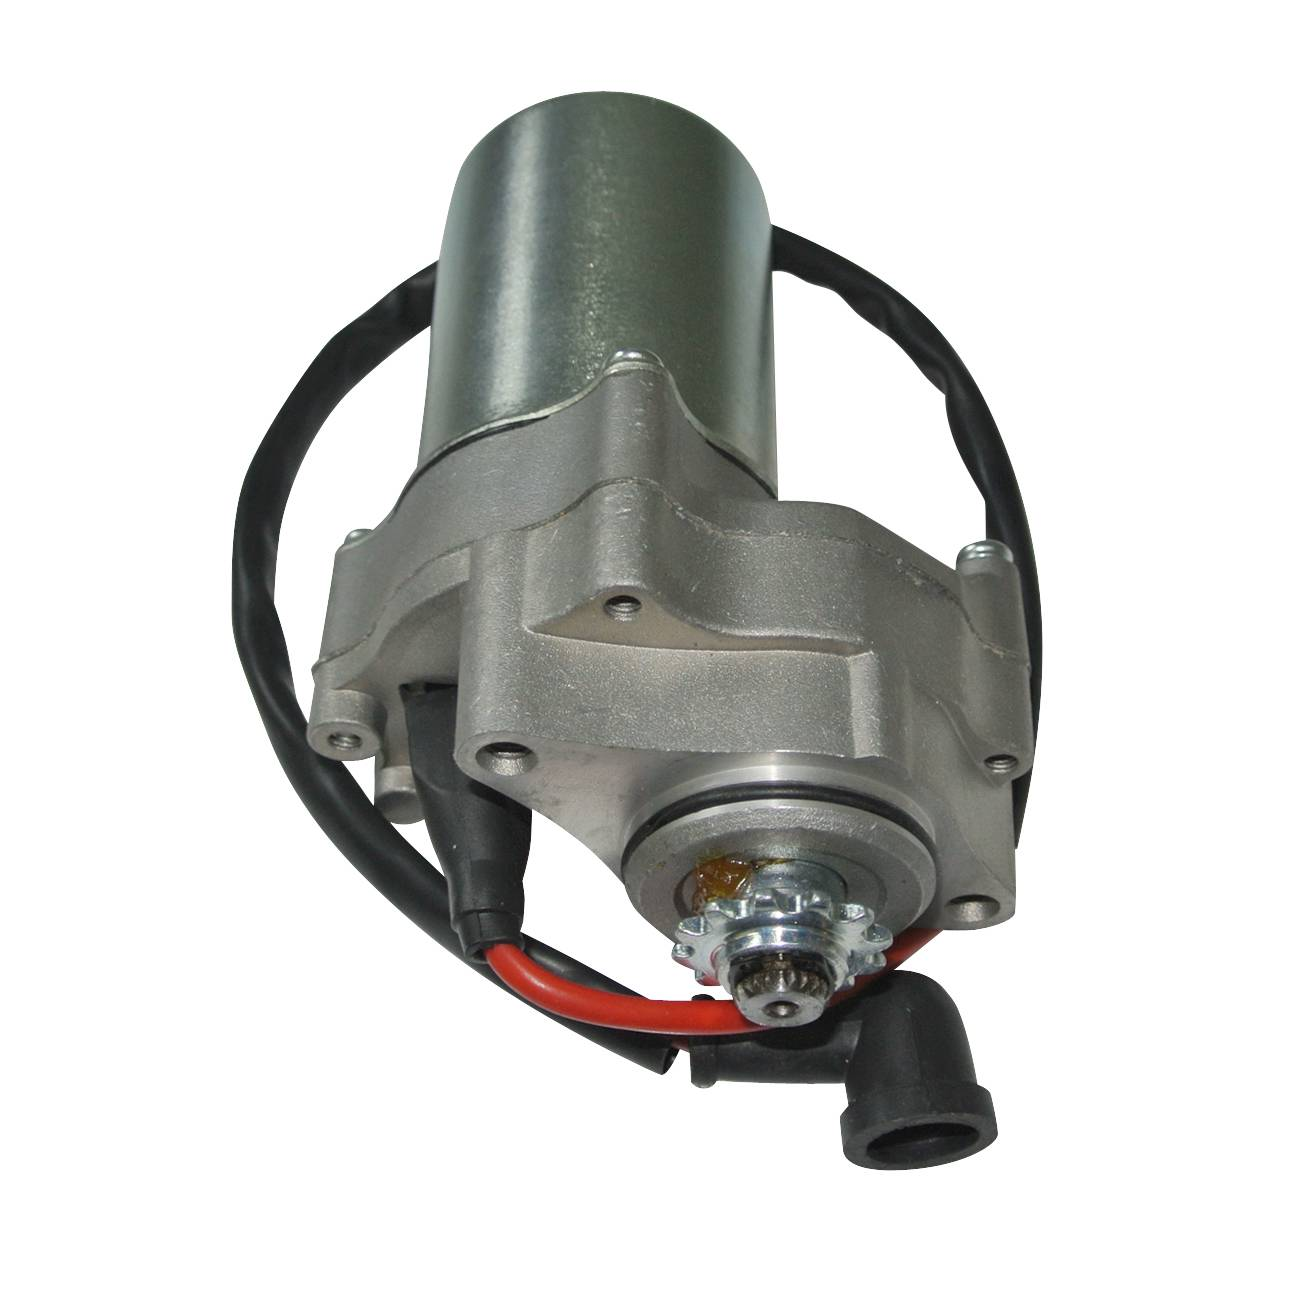 Electric Starter Ignition For 50cc 70cc 90cc 110cc <font><b>125cc</b></font> AtV Quad <font><b>Pit</b></font> <font><b>Bike</b></font> Part image